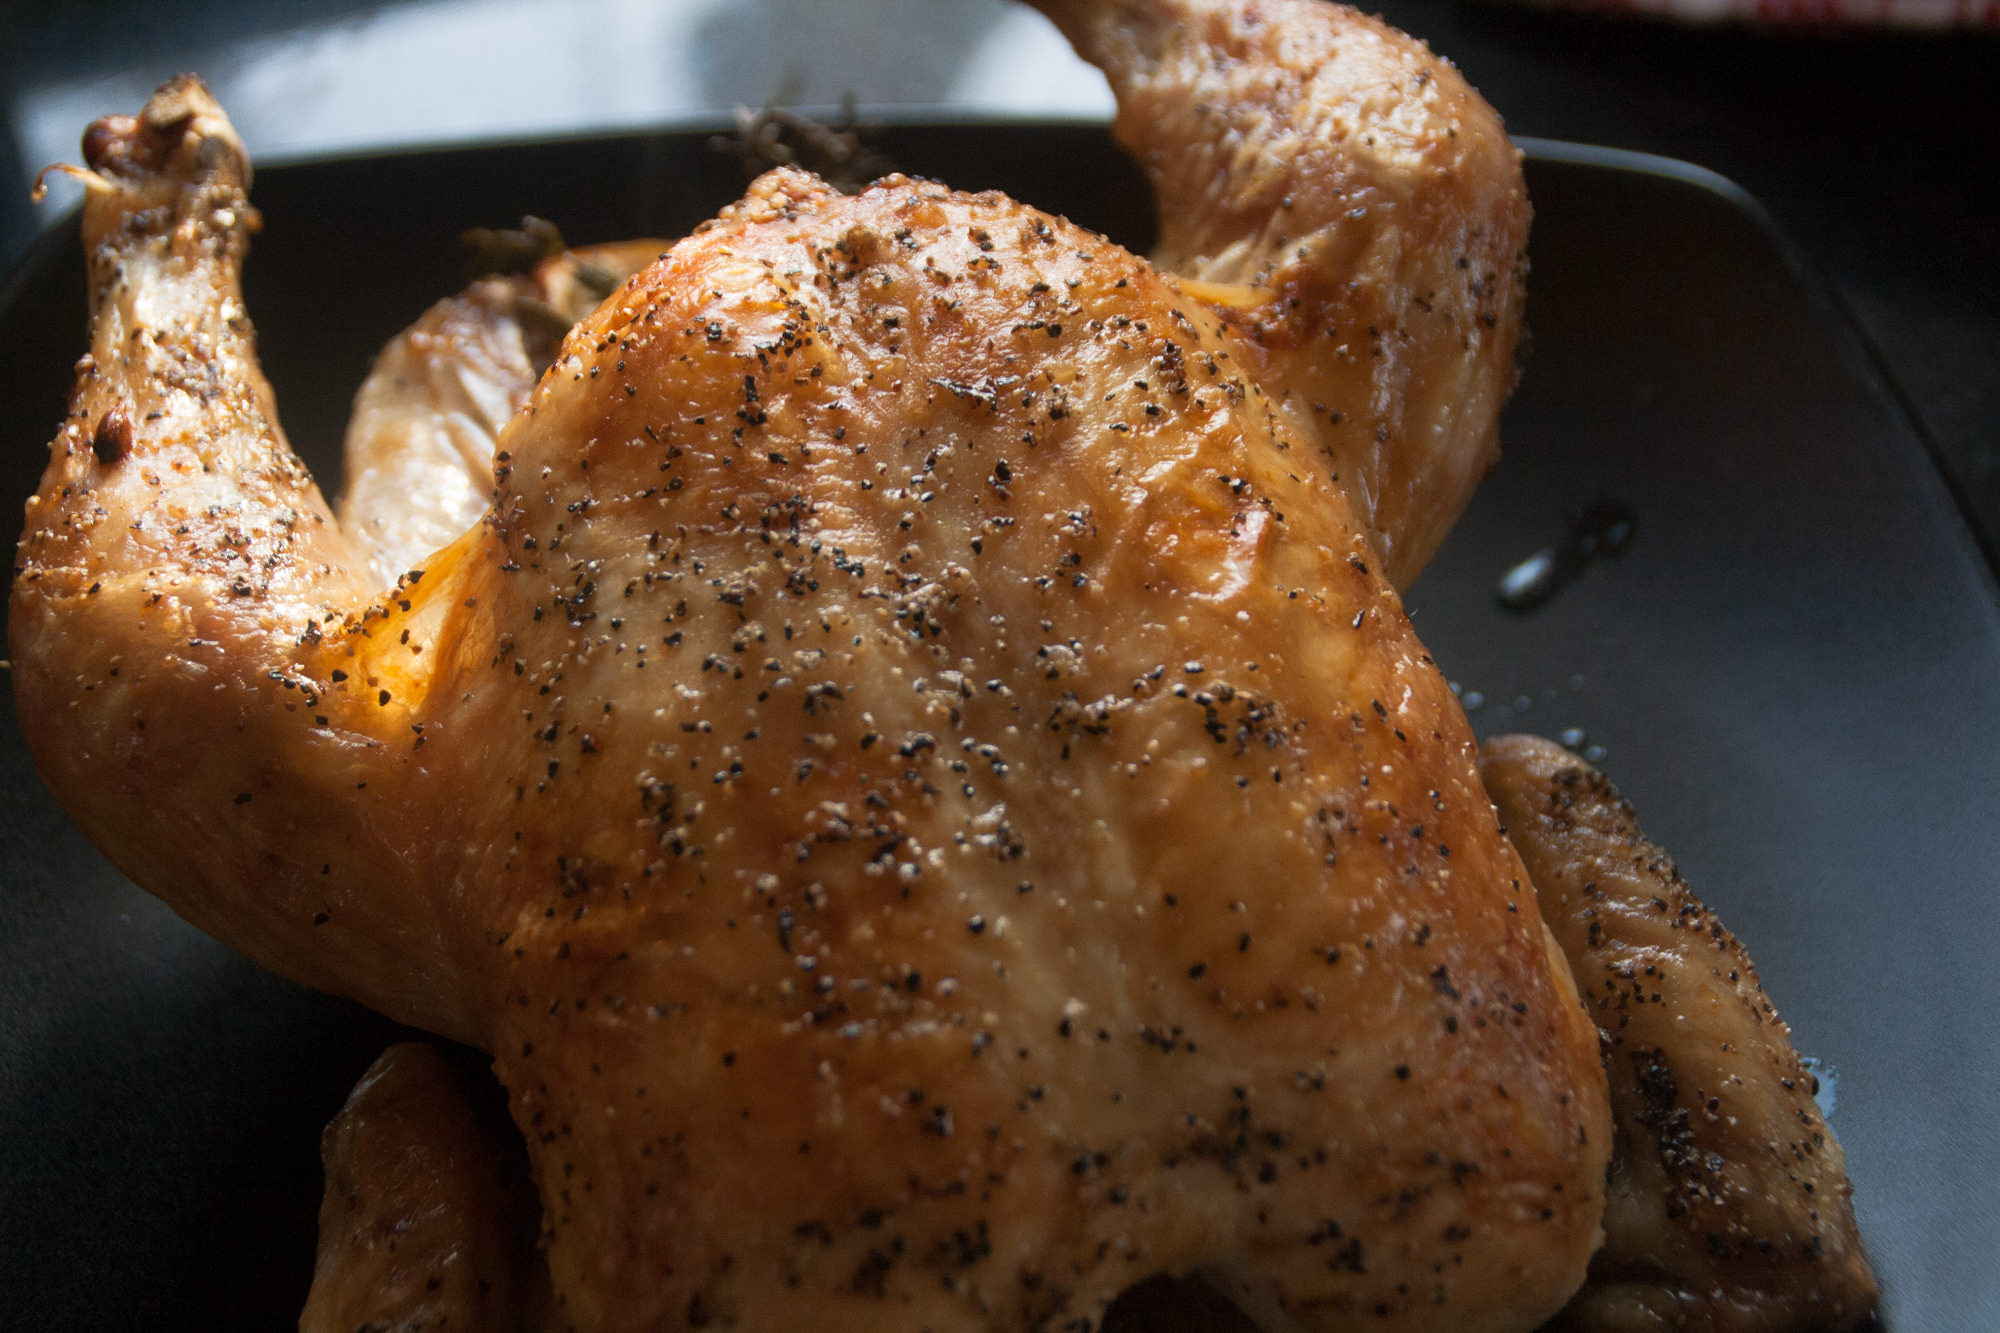 roasted chicken with pan sauce recipe-8.jpg